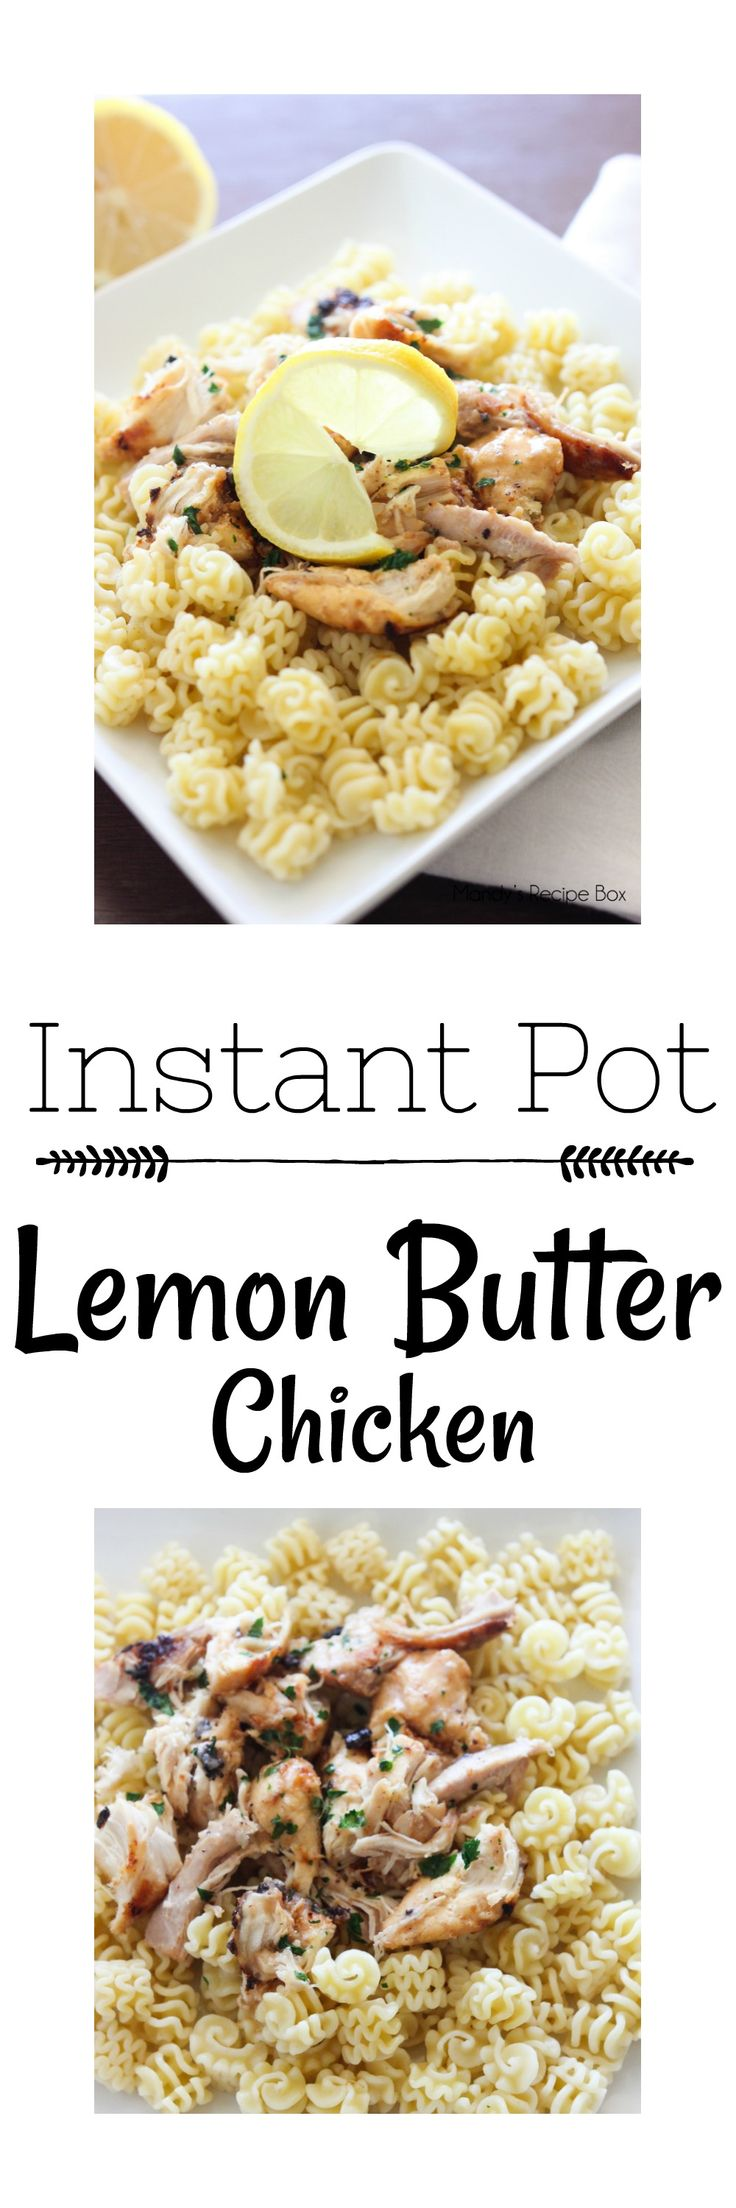 Pressure Cookers like the Instant Pot are all the rage now and for good reason! Get yourself one and make this Instant Pot Lemon Butter Chicken immediately. The buttery lemon sauce cooks into the chicken in just 8 minutes.